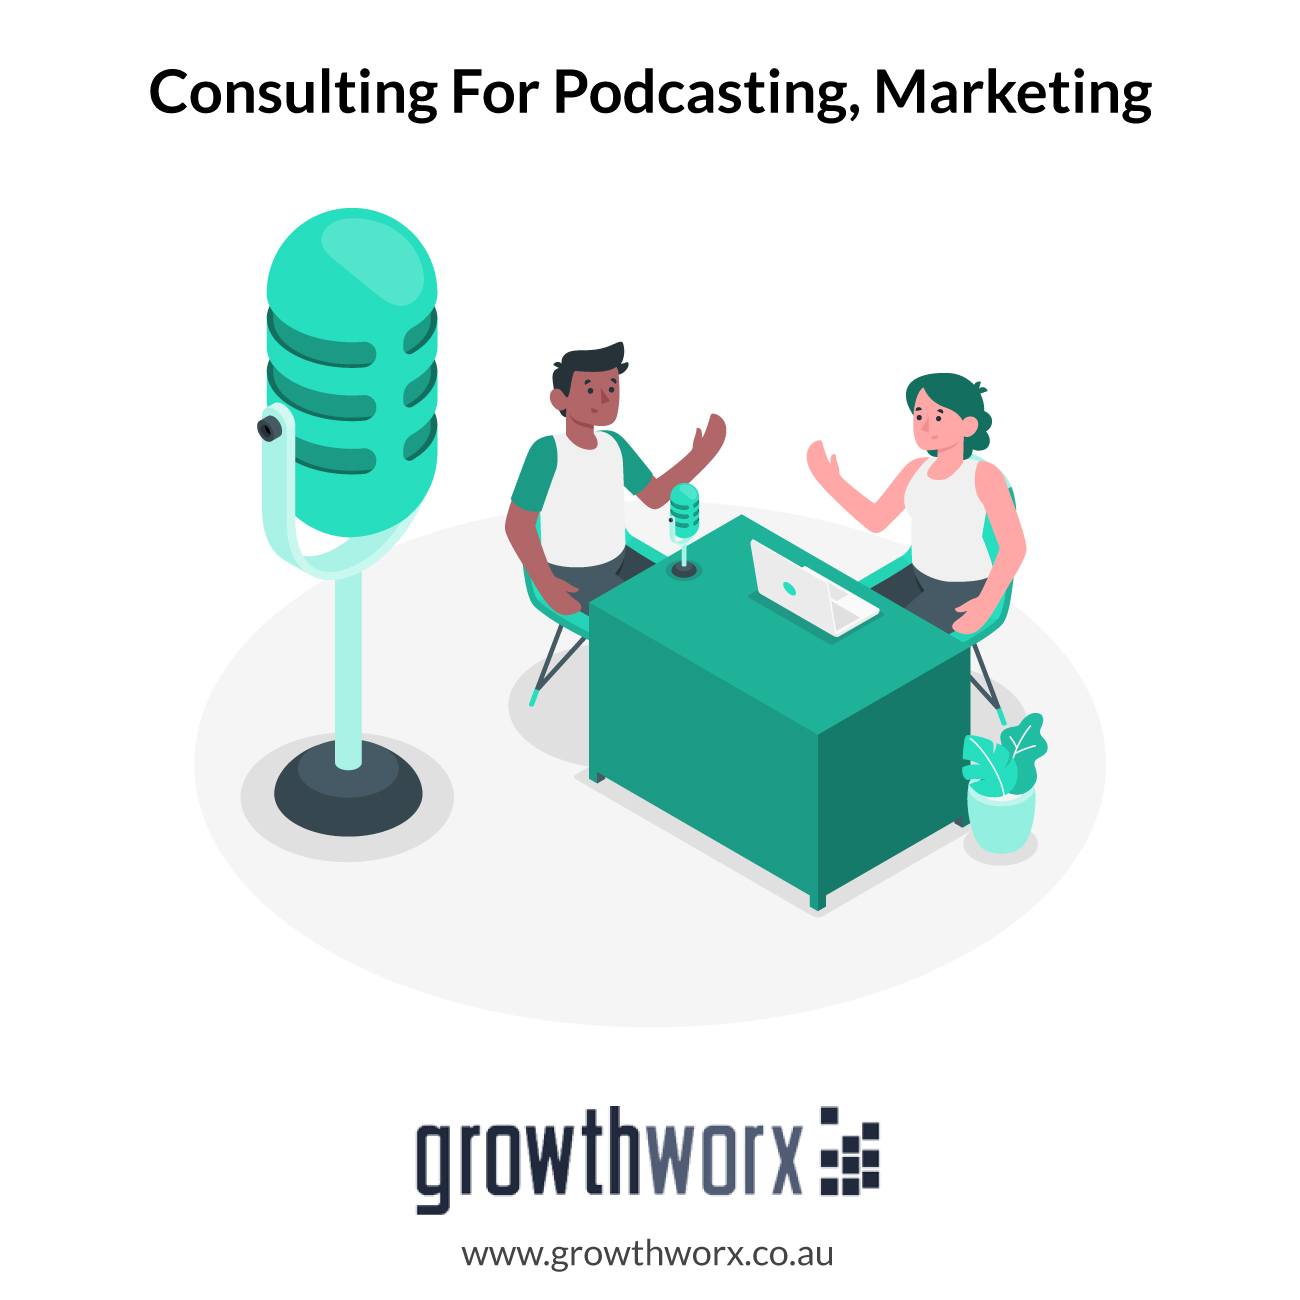 I will provide consulting for podcasting, marketing, or selling on Growthworx 1